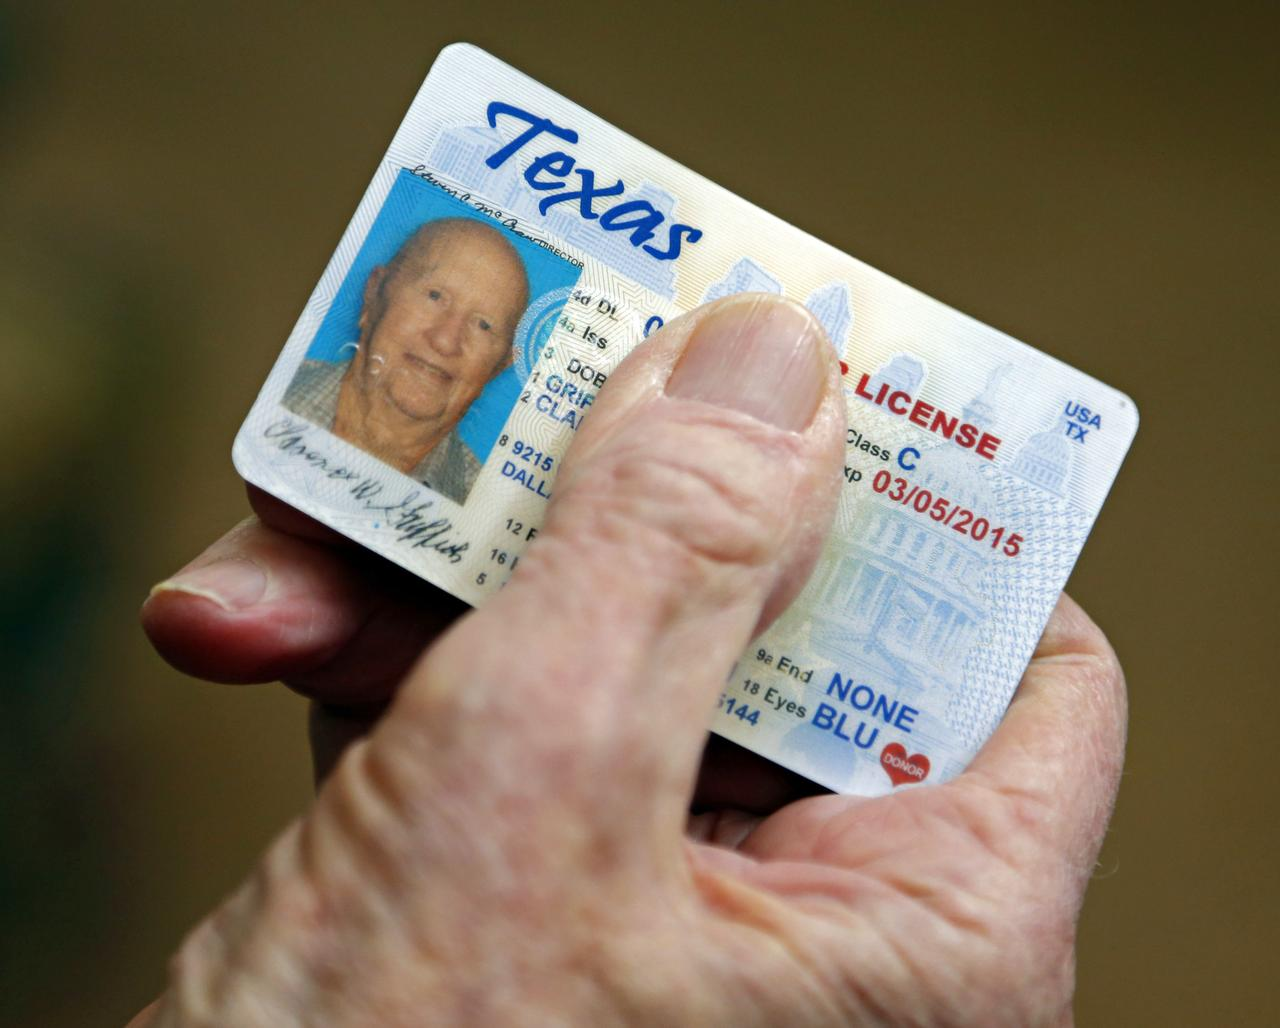 Your Texas Driver S License Vehicle Information And Lien Holder Were Stolen In A Huge Data Theft